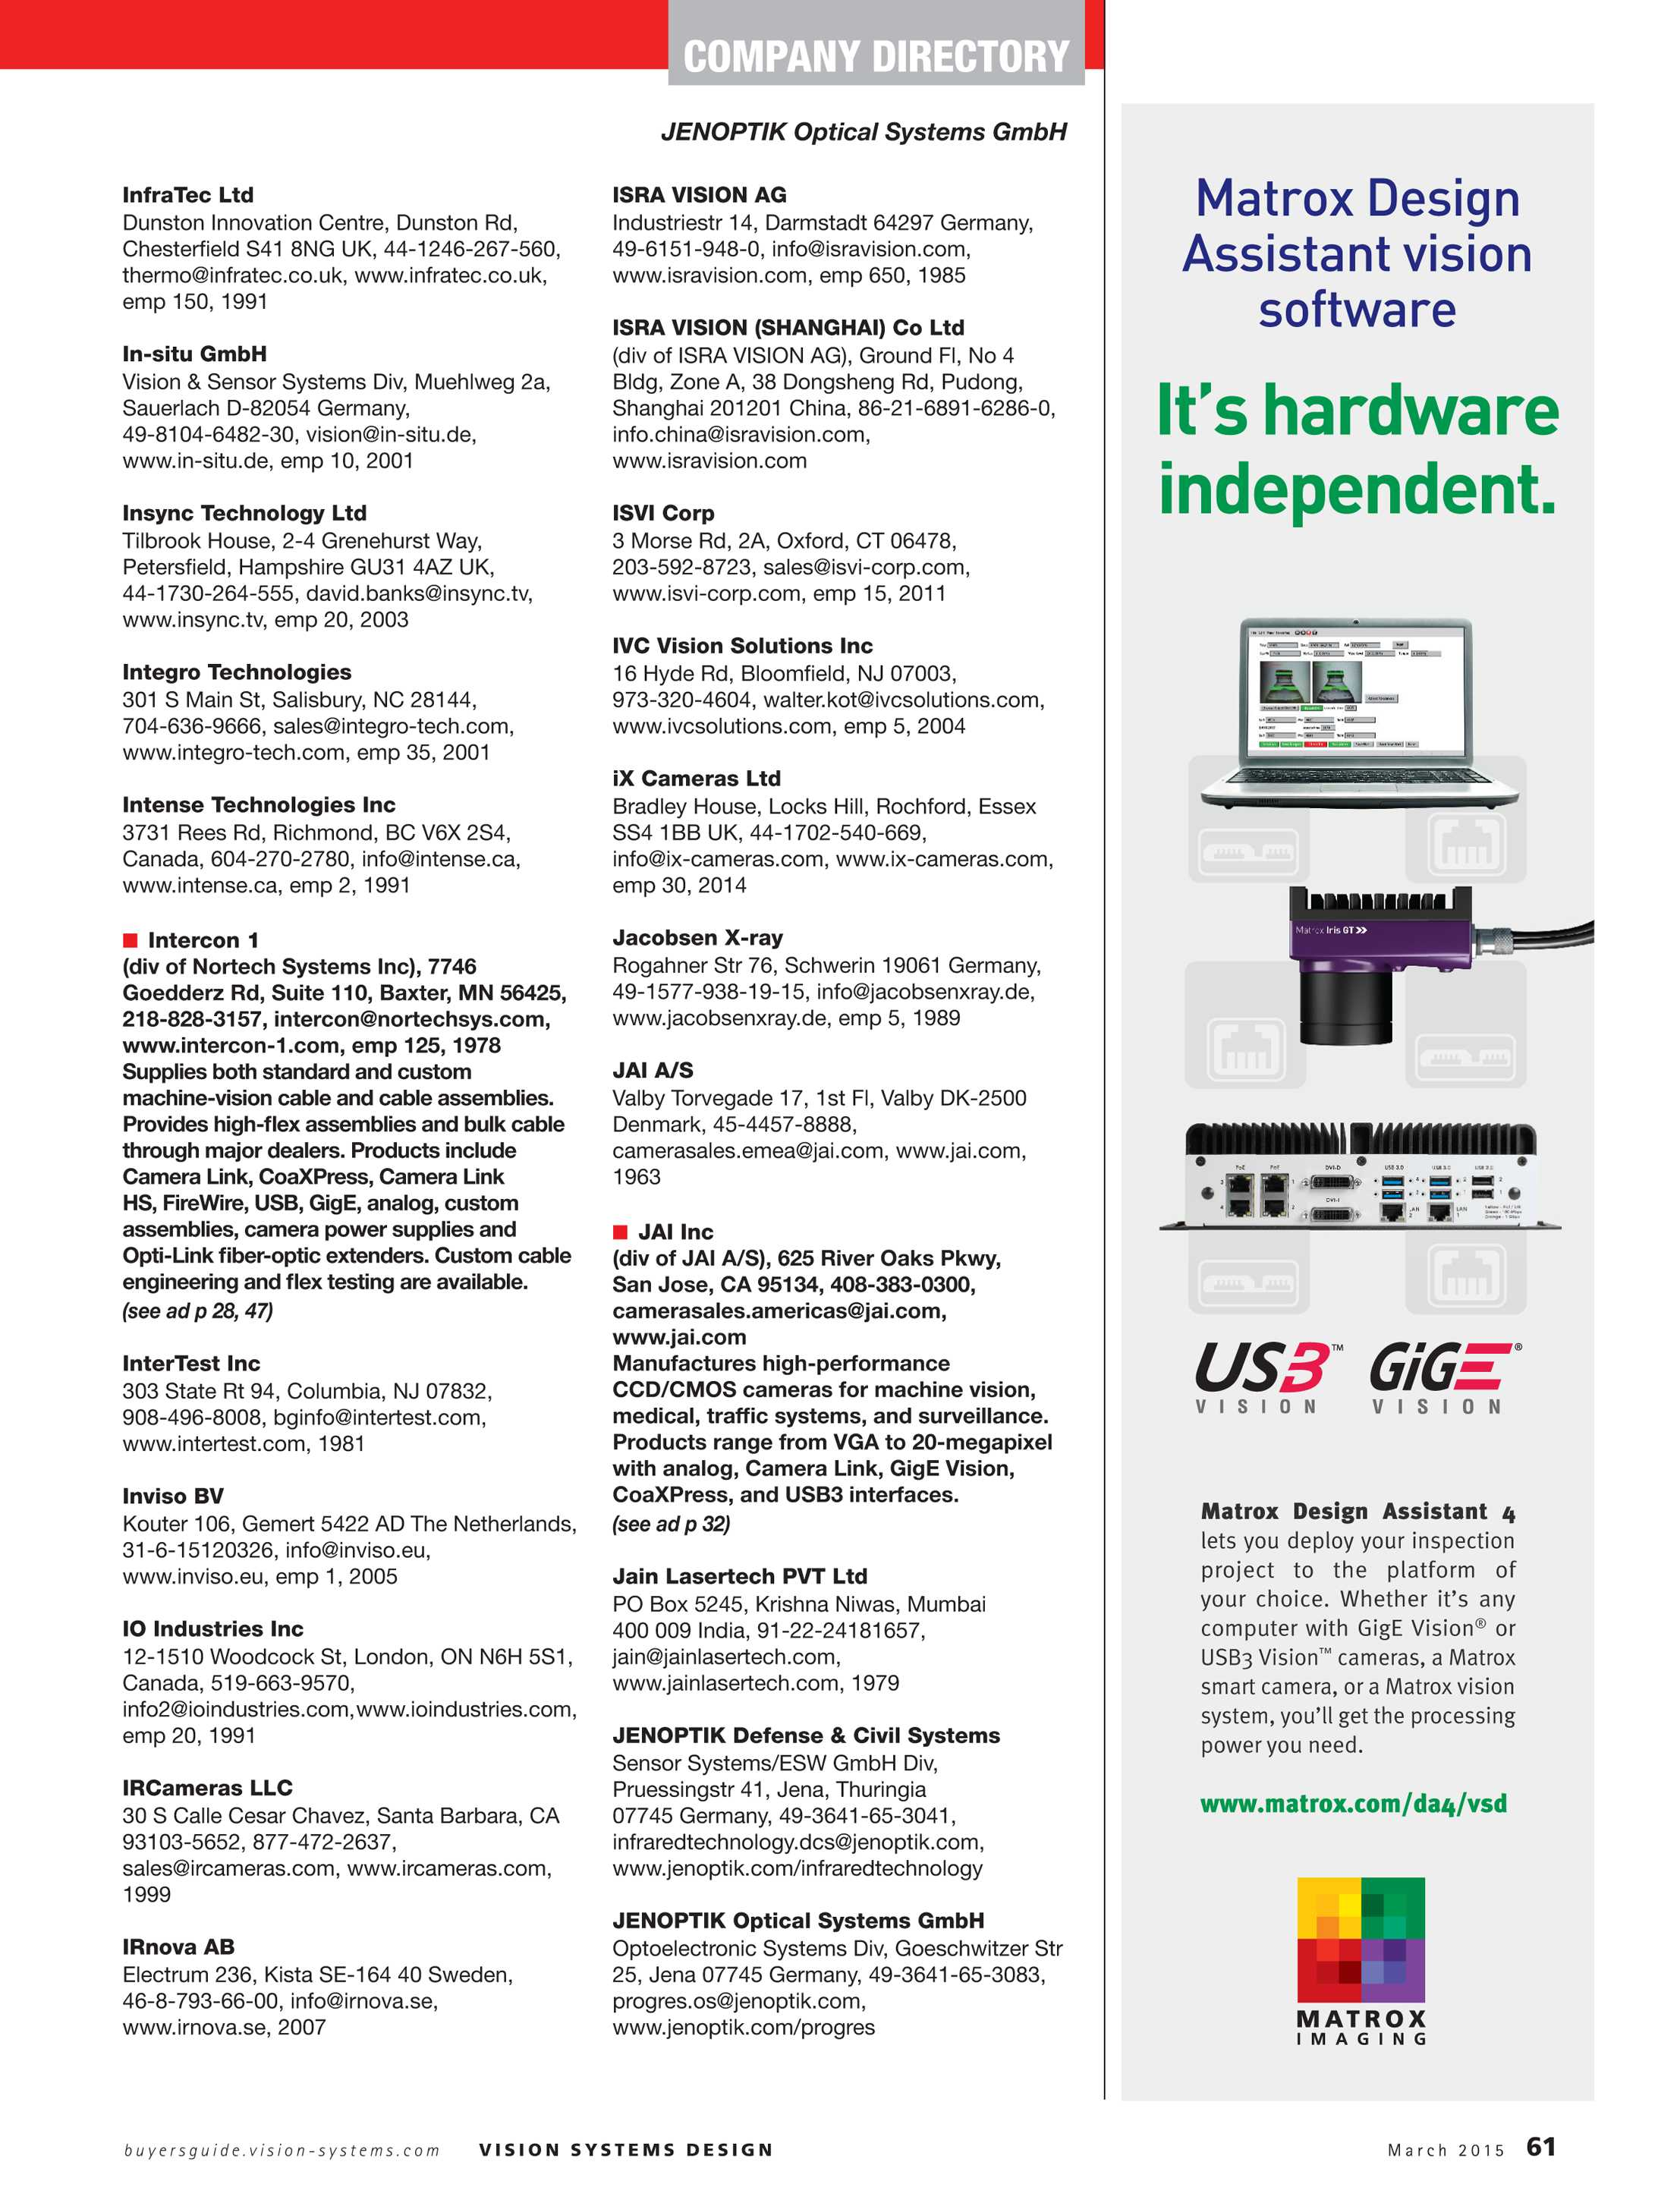 Vision Systems - March 2015 - page 61